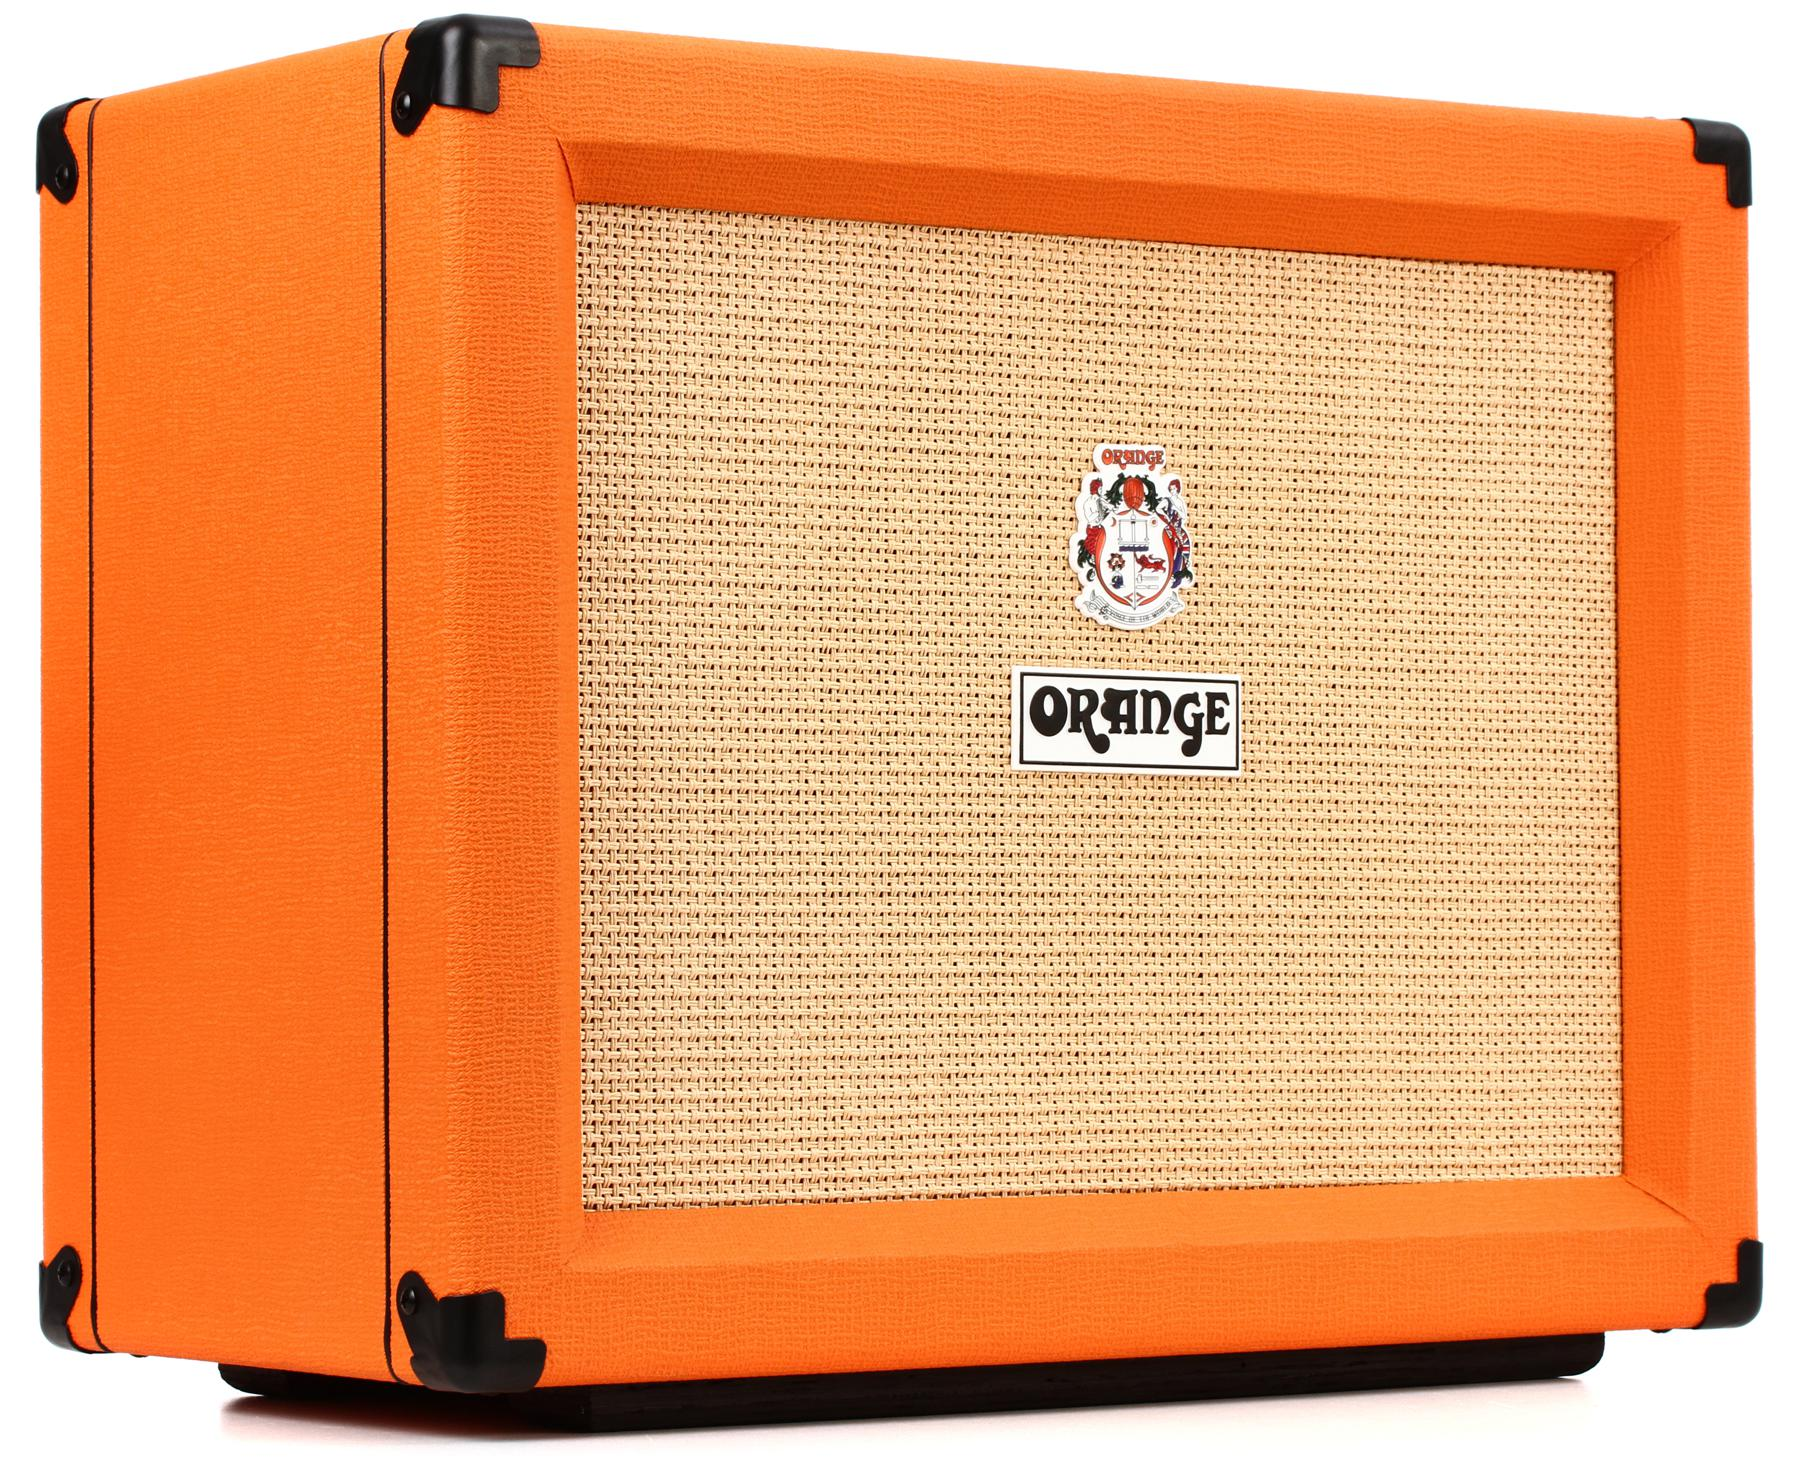 1. Orange Amps Guitar Amplifier Cabinet (PPC112C)